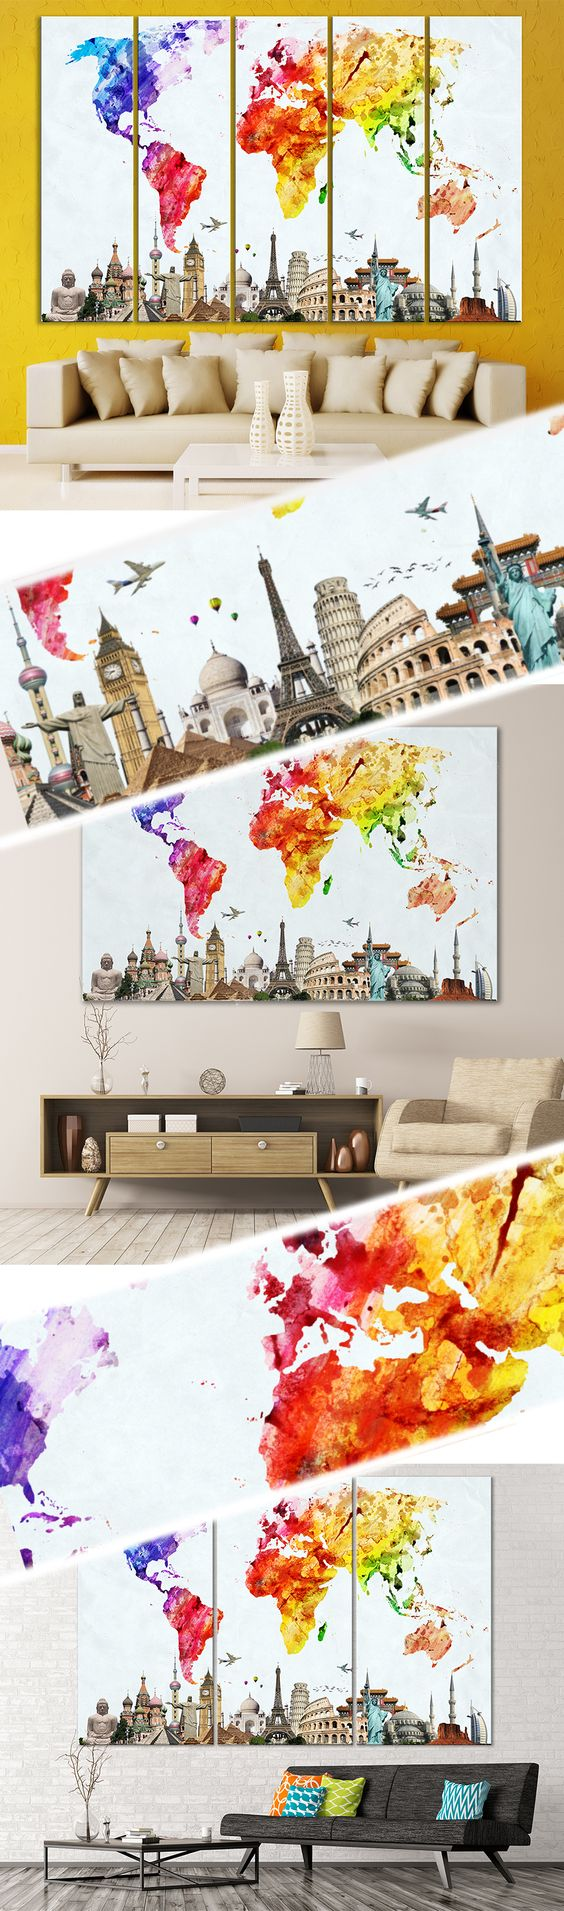 Watercolor world map 103 canvas print office walls wall creative world map canvas prints wall art for large home or office wall decoration sale gumiabroncs Gallery